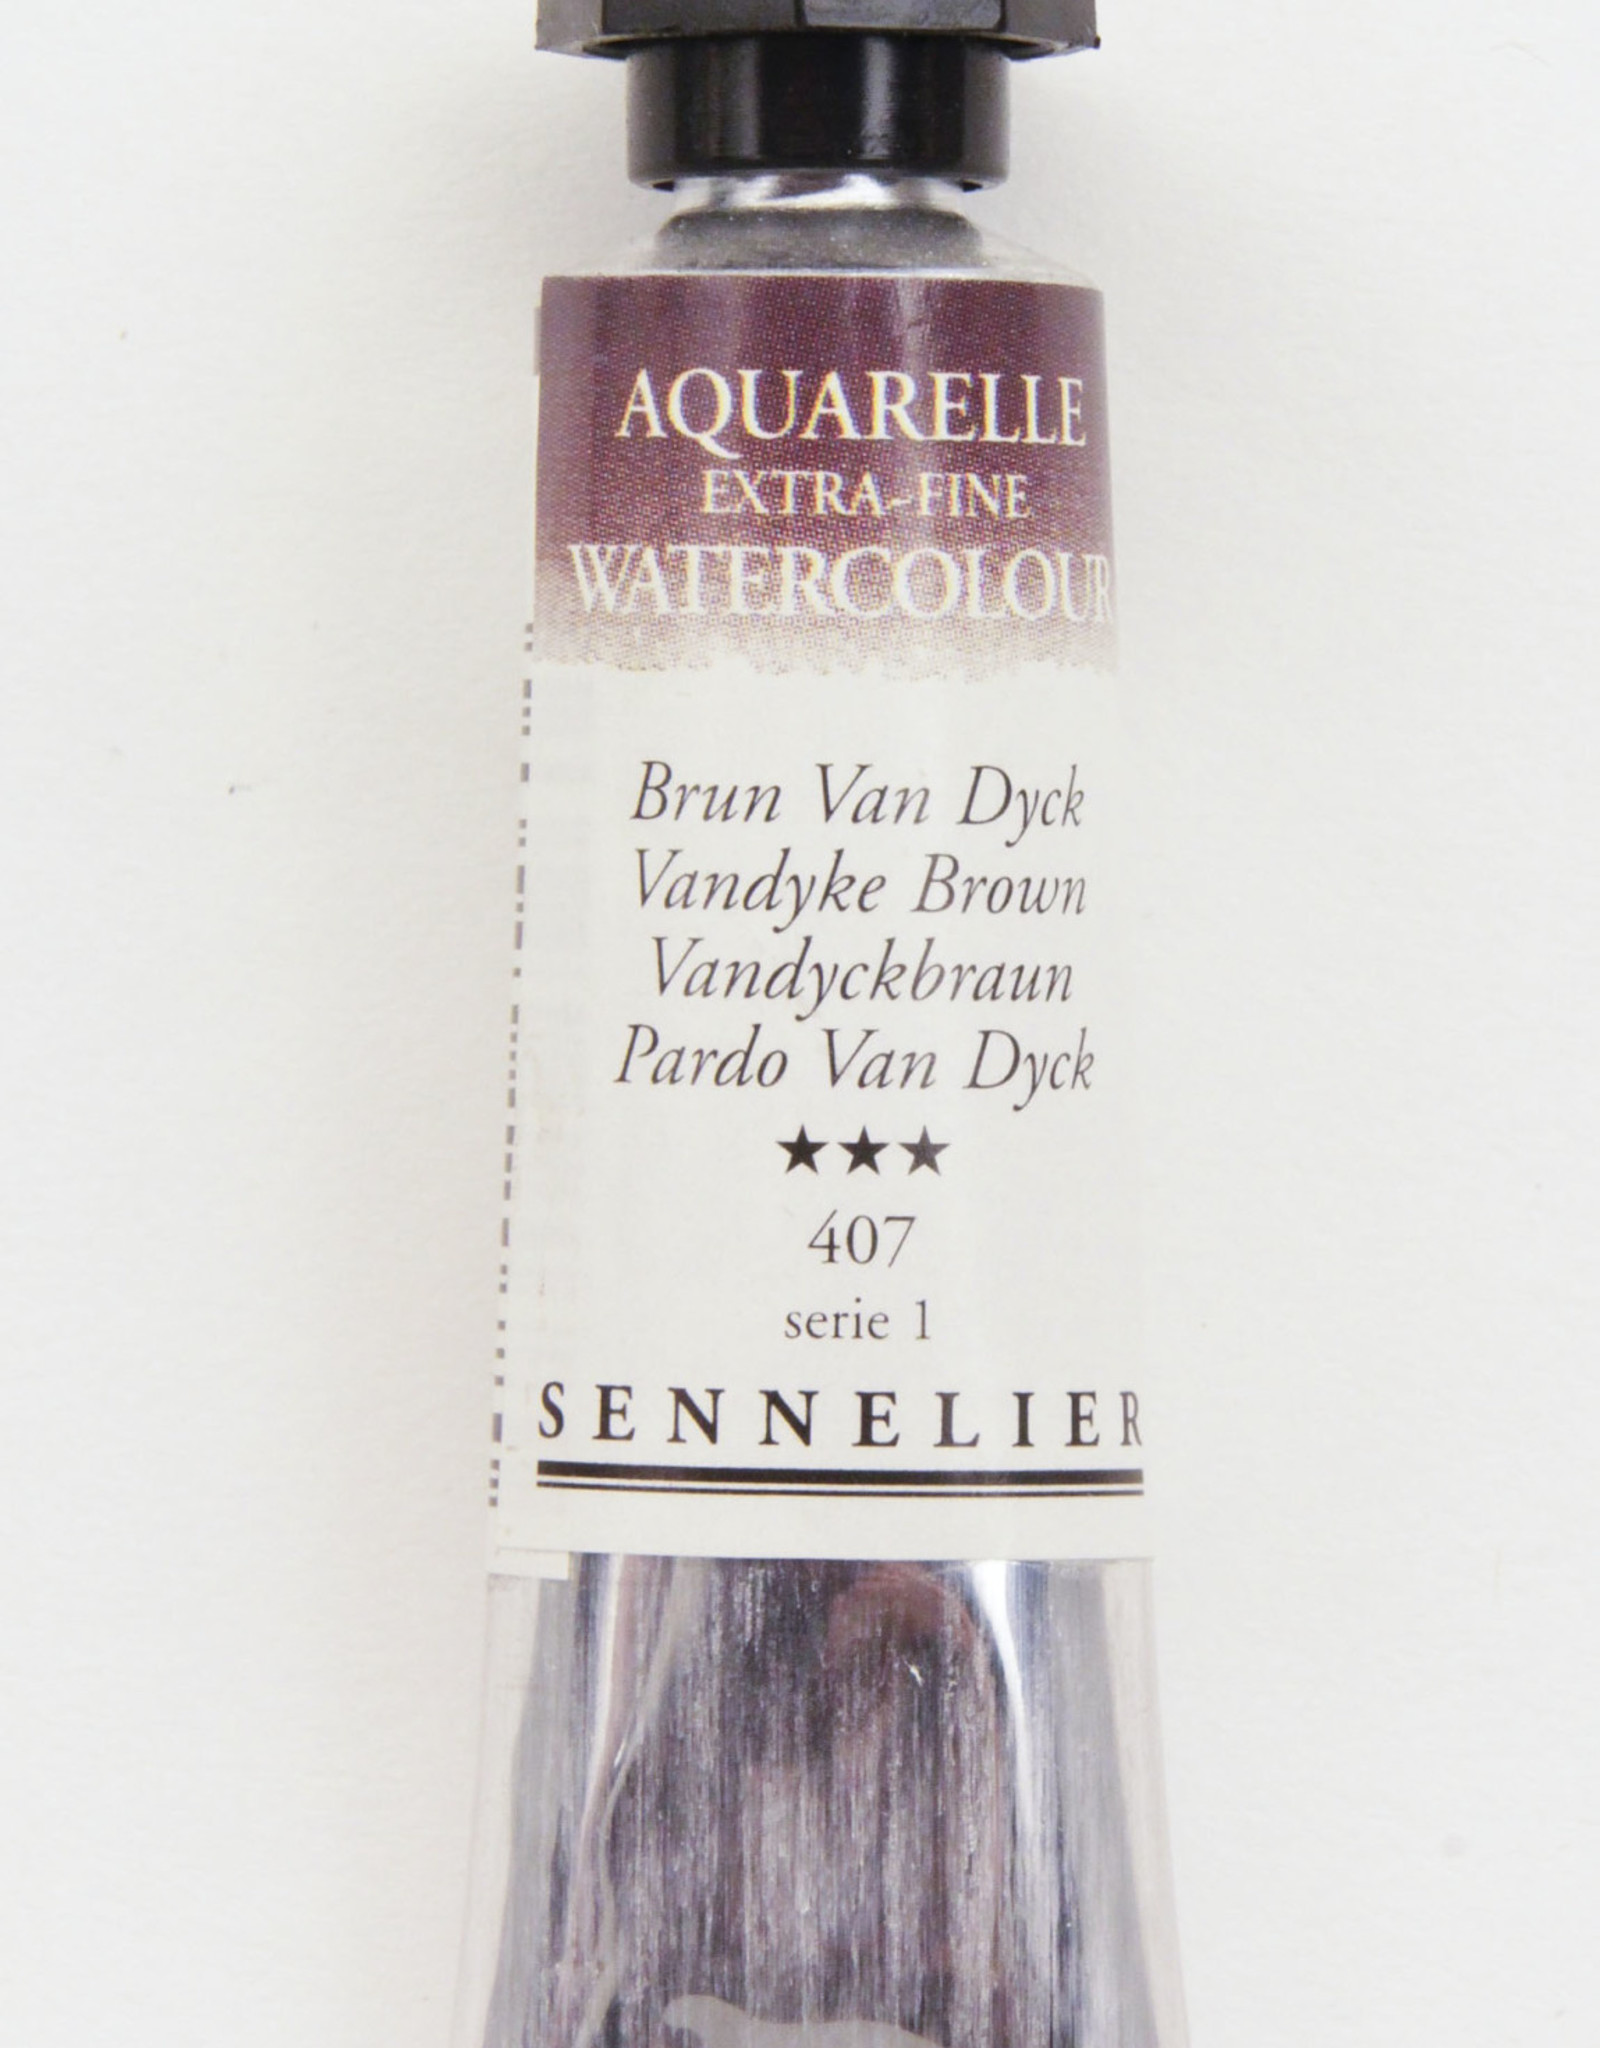 Sennelier, Aquarelle Watercolor Paint, Van Dyke Brown, 407,10ml Tube, Series 1